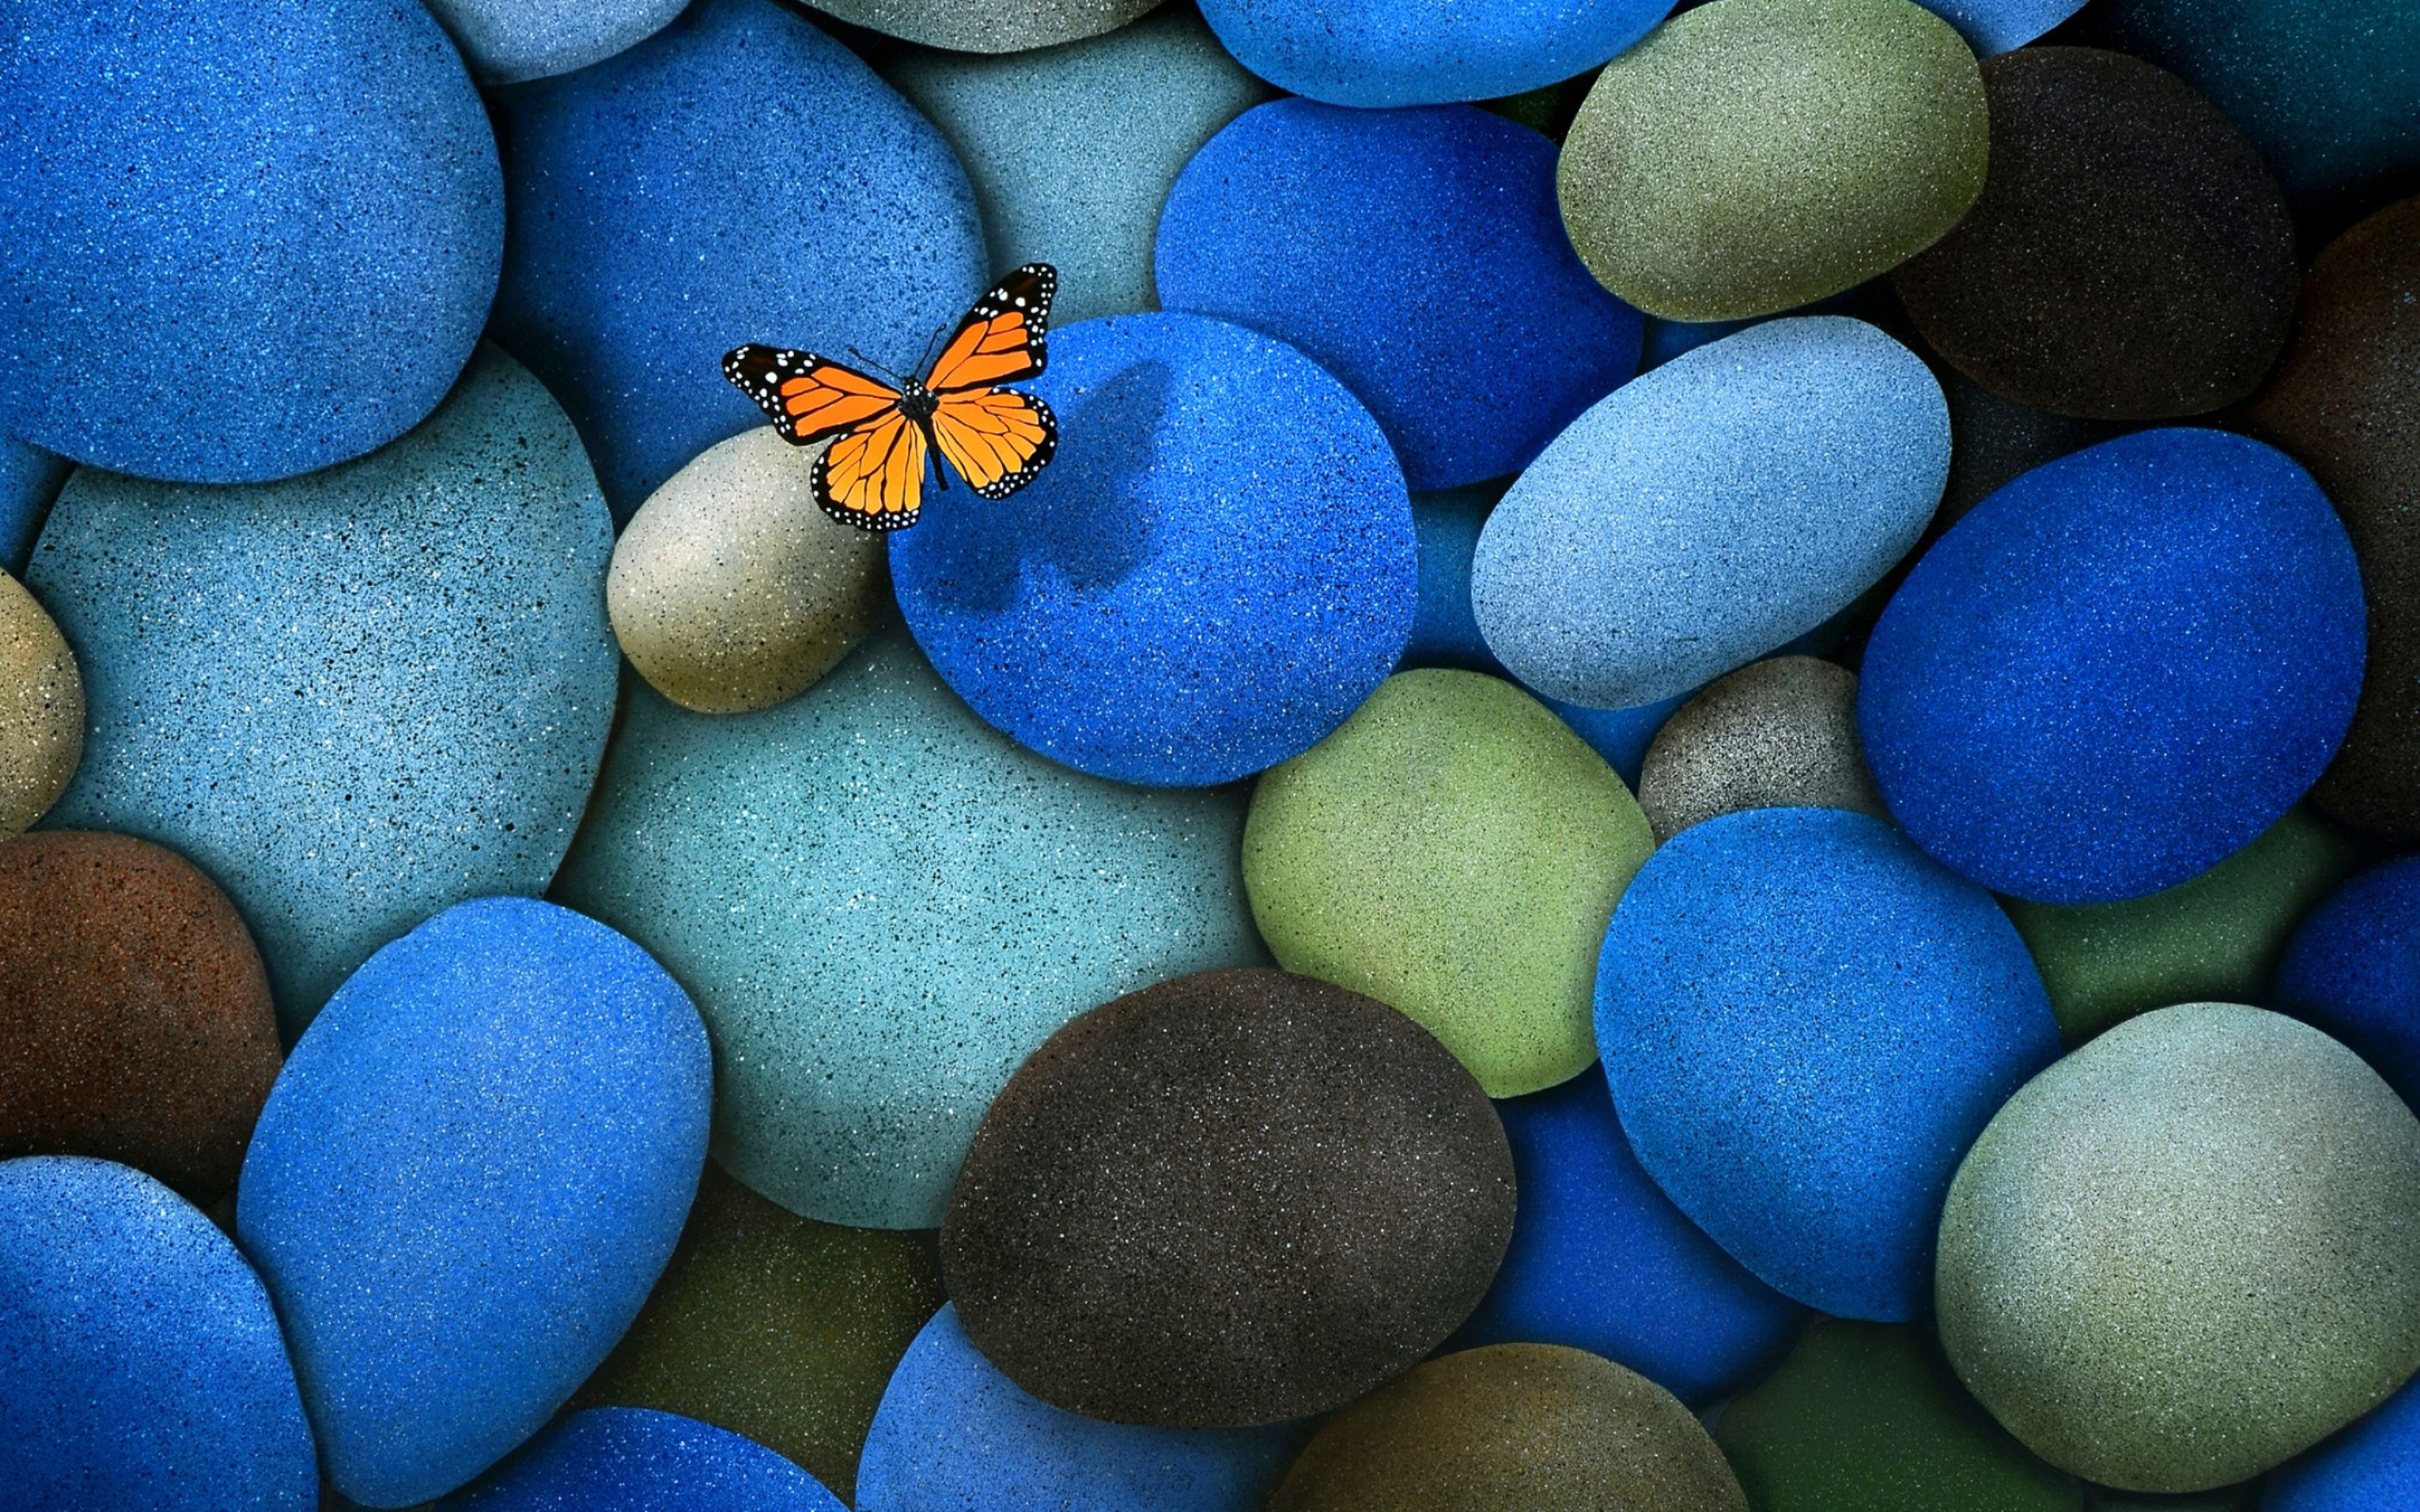 Download free HD Butterfly On Coloured Stones Wallpaper, image